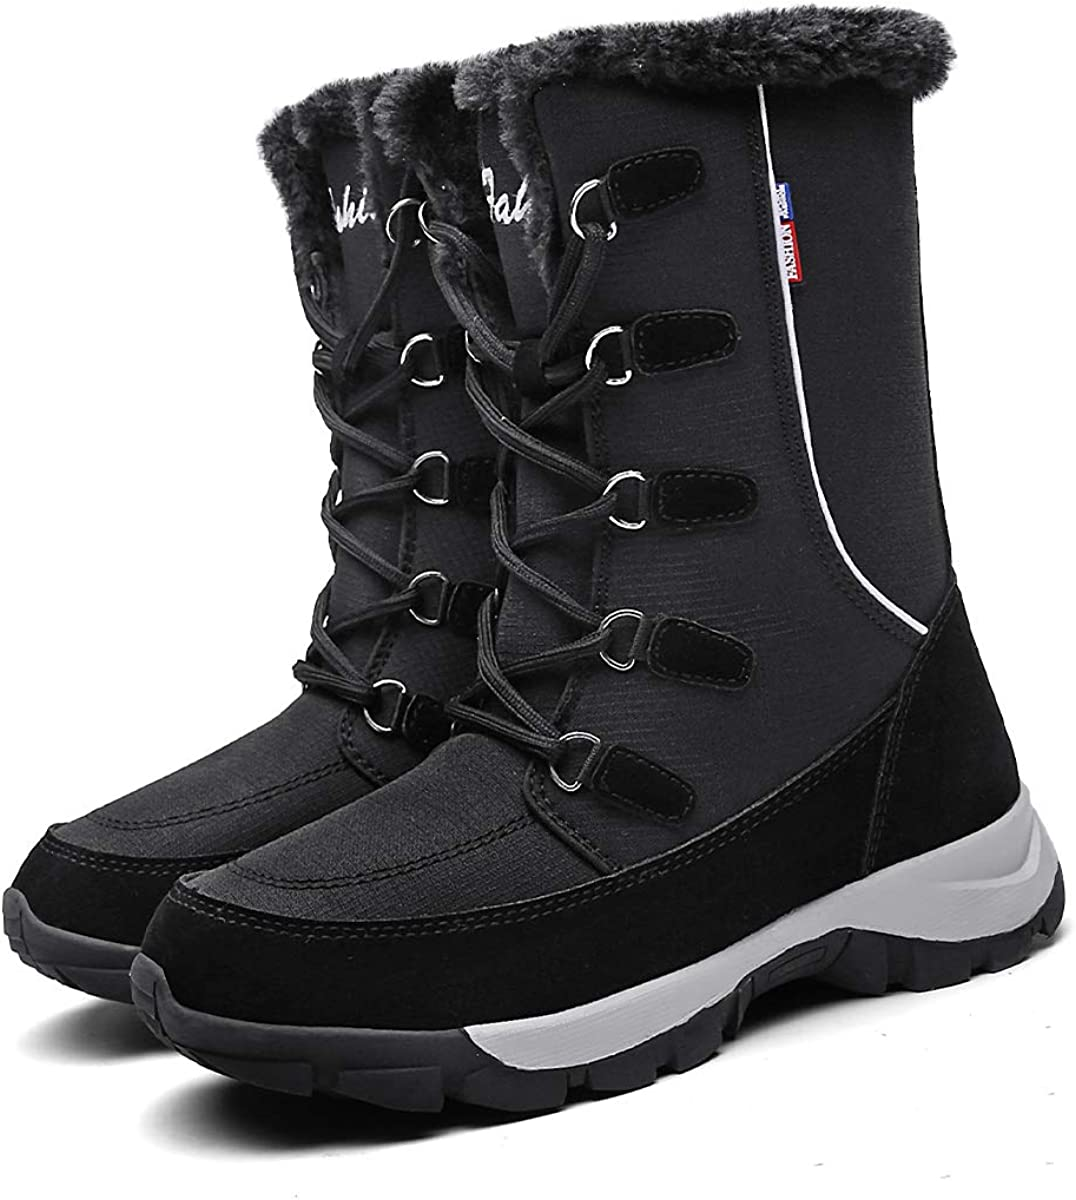 Women's Snow Boots Winter Waterproof Ankle Boots Warm Fur for Outdoor Booties Fashion Slip On Shoes